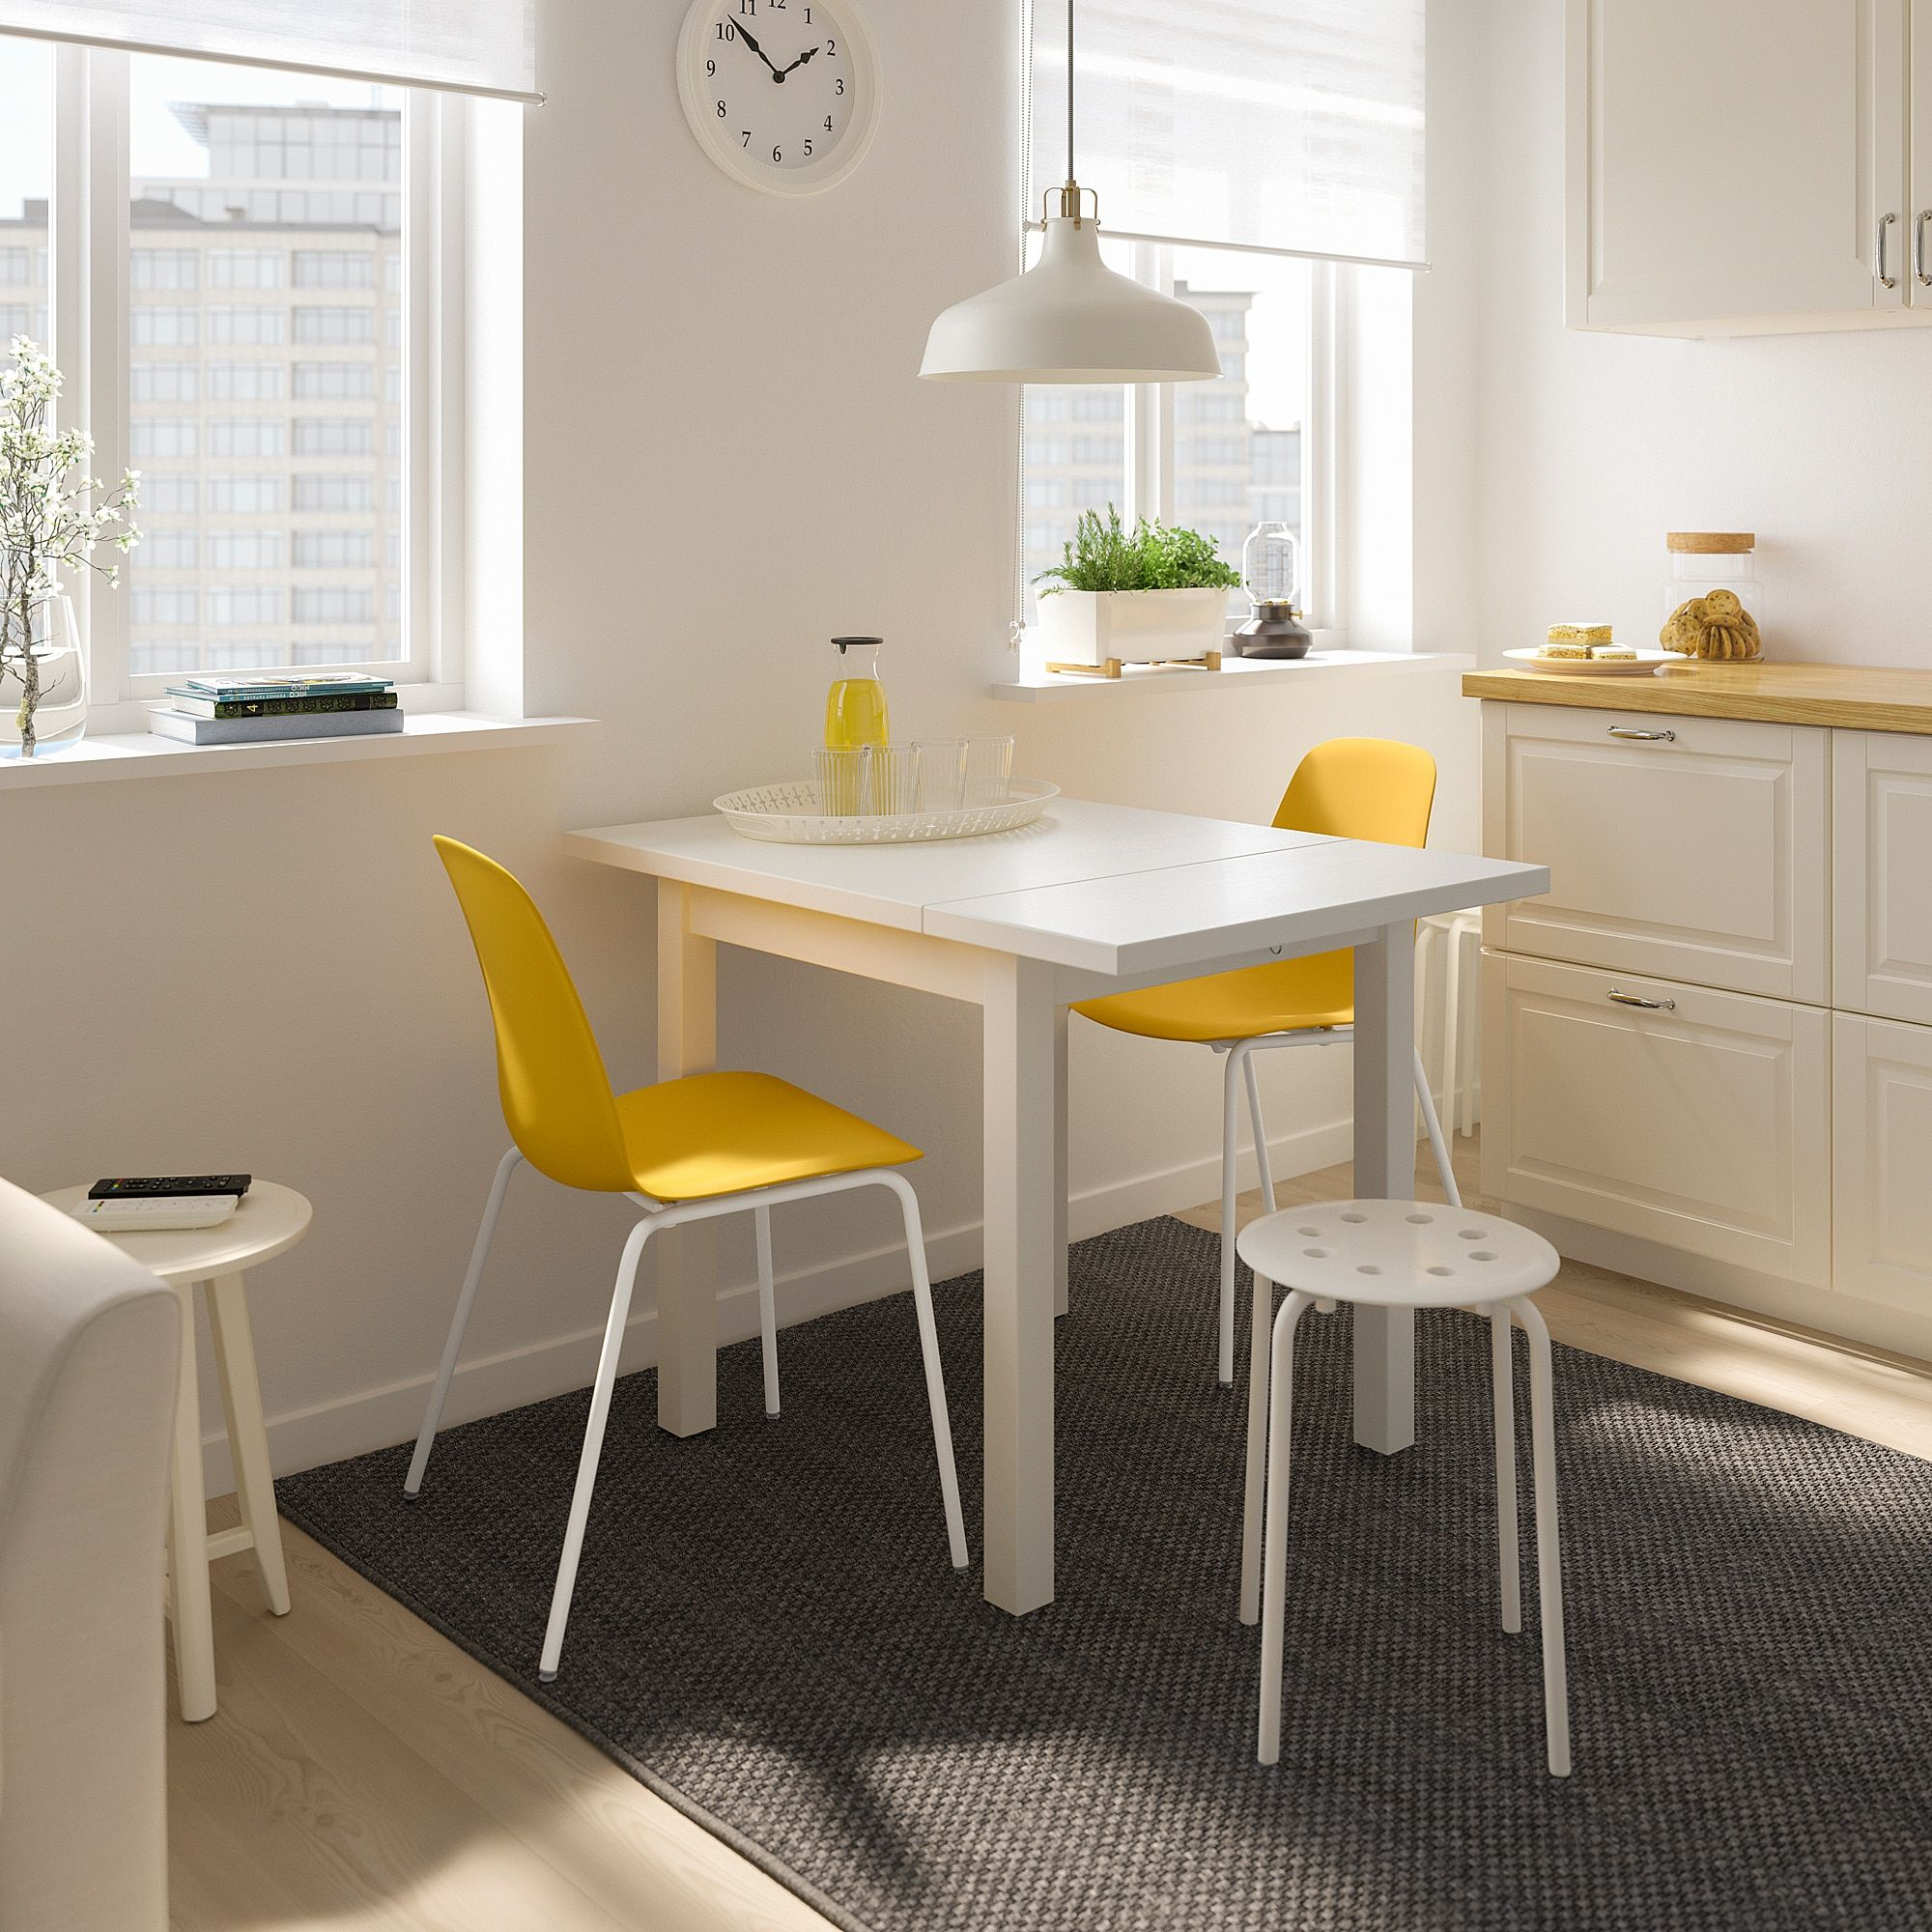 Nordviken Leifarne Yellow Dining Chairs Chair Ikea